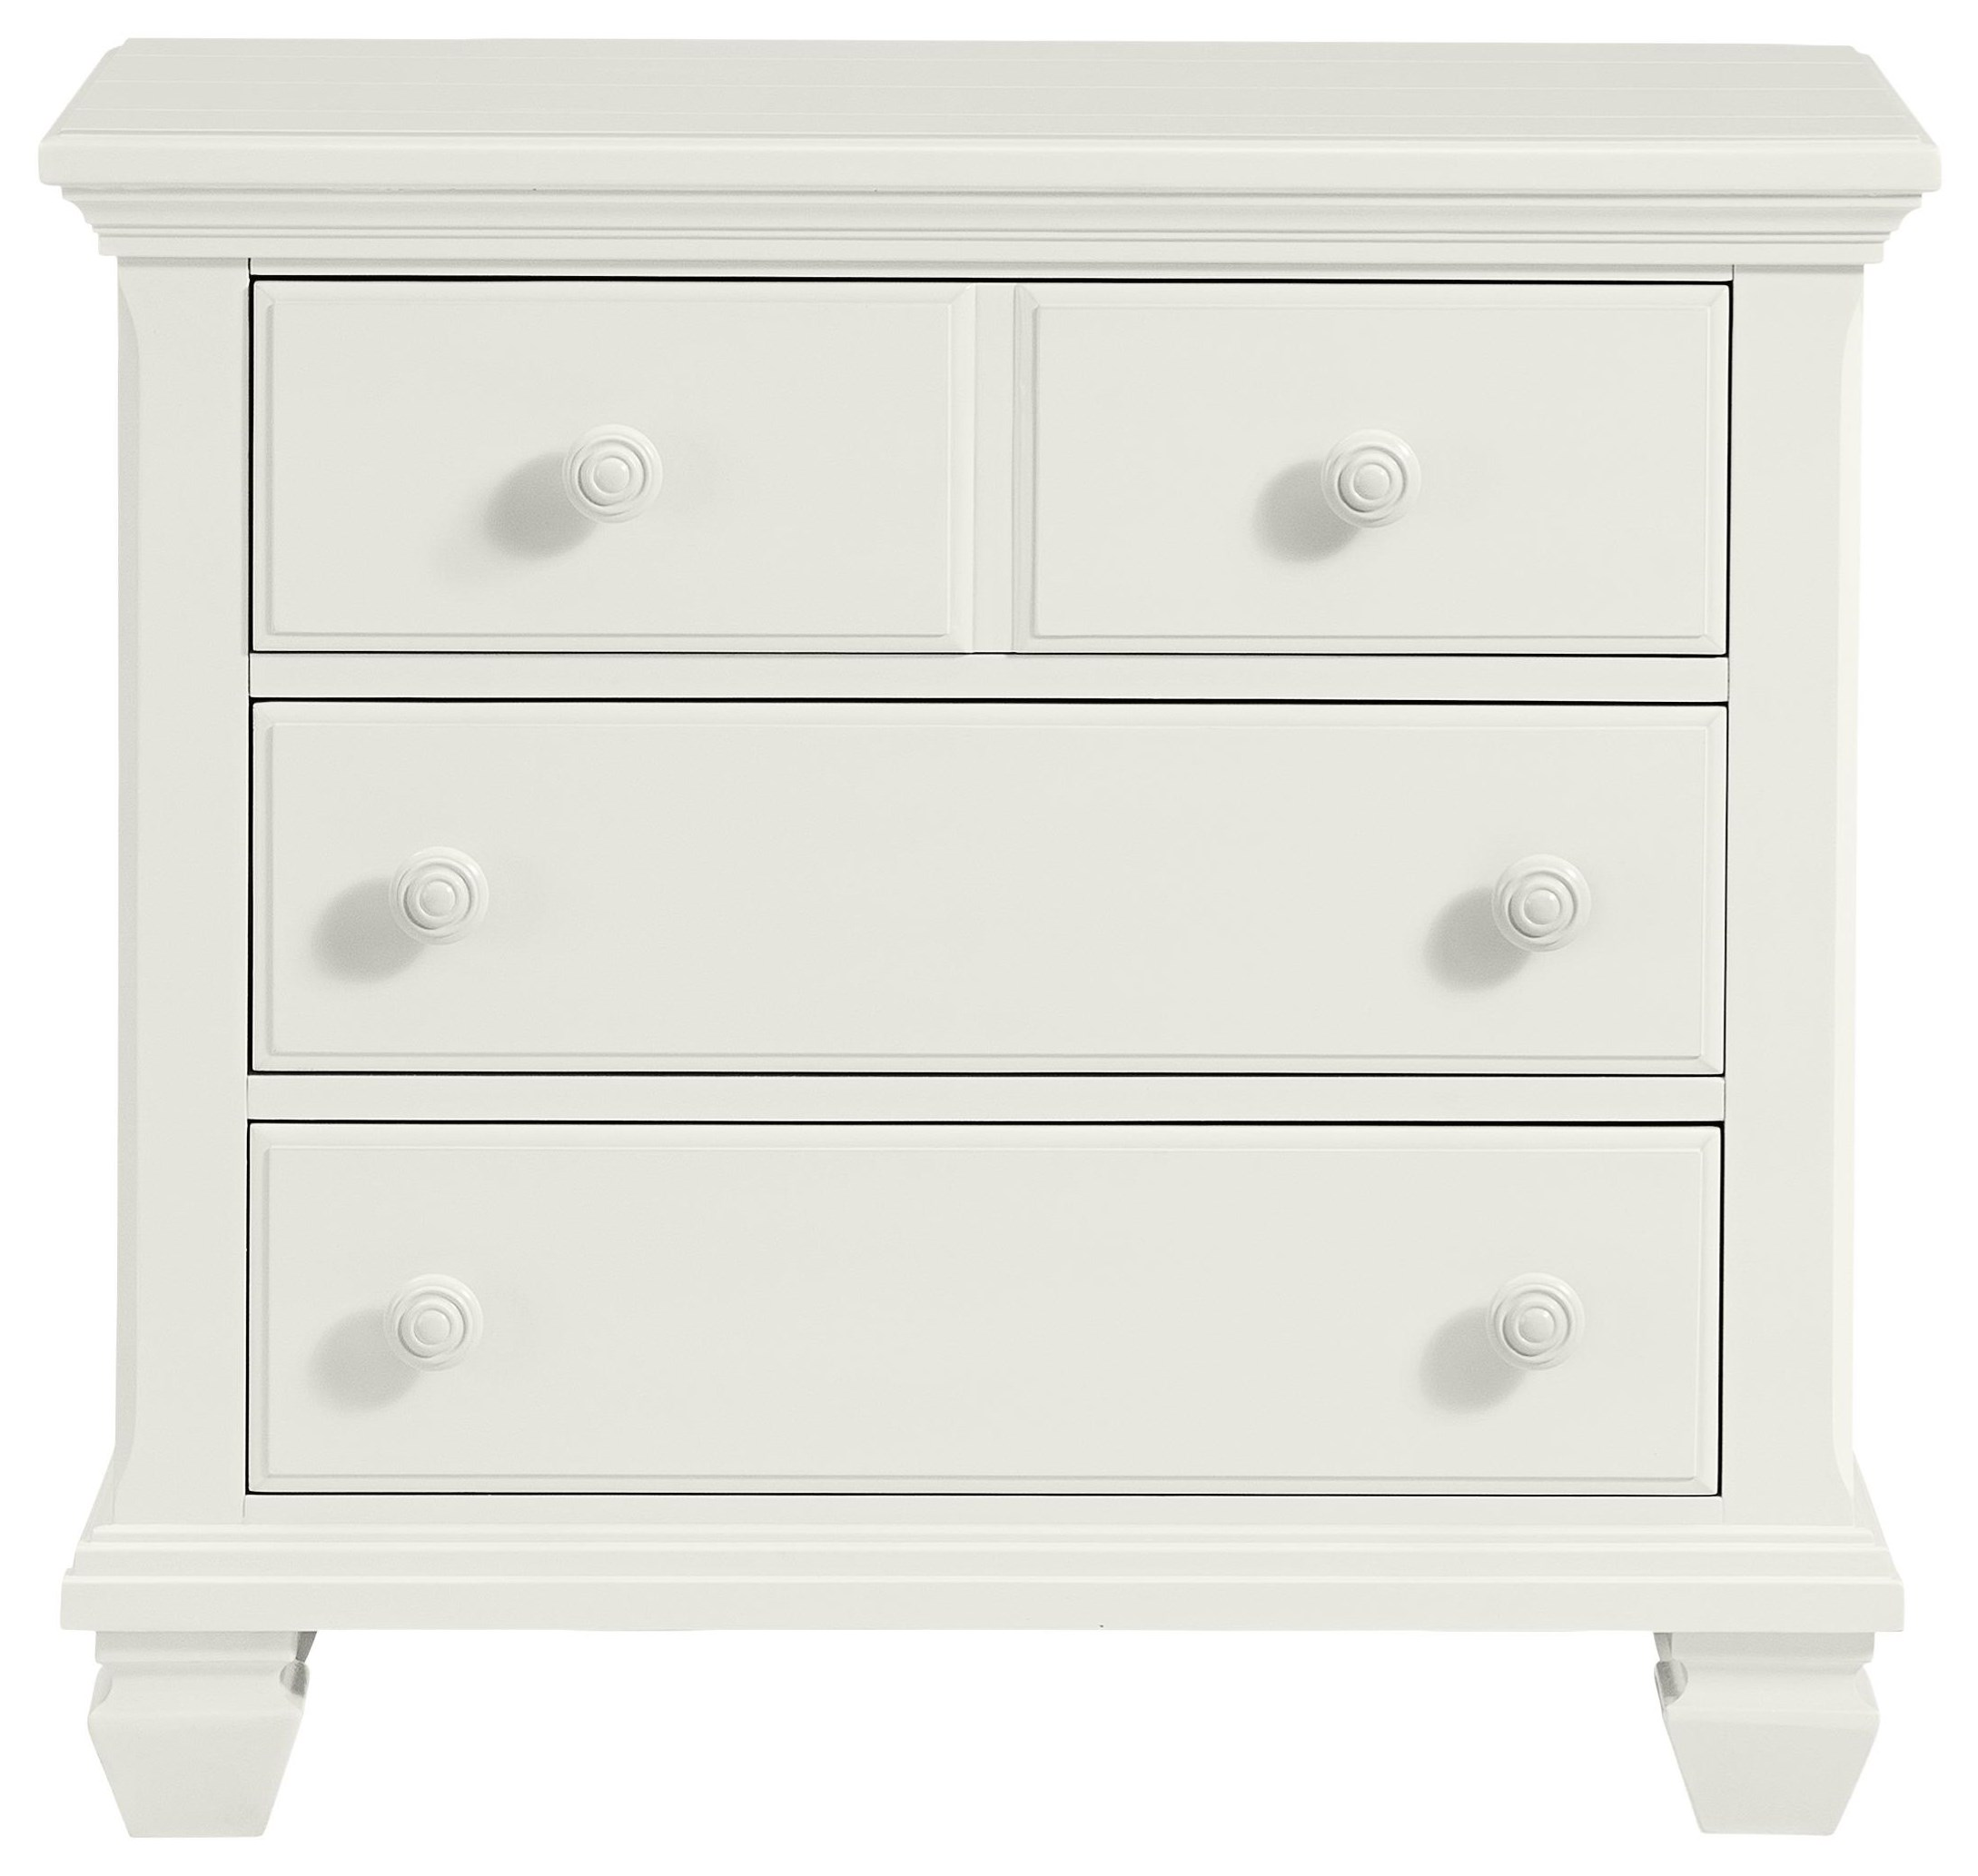 Harbortown Three Drawer Nightstand with USB by Stillwater Furniture at Baer's Furniture